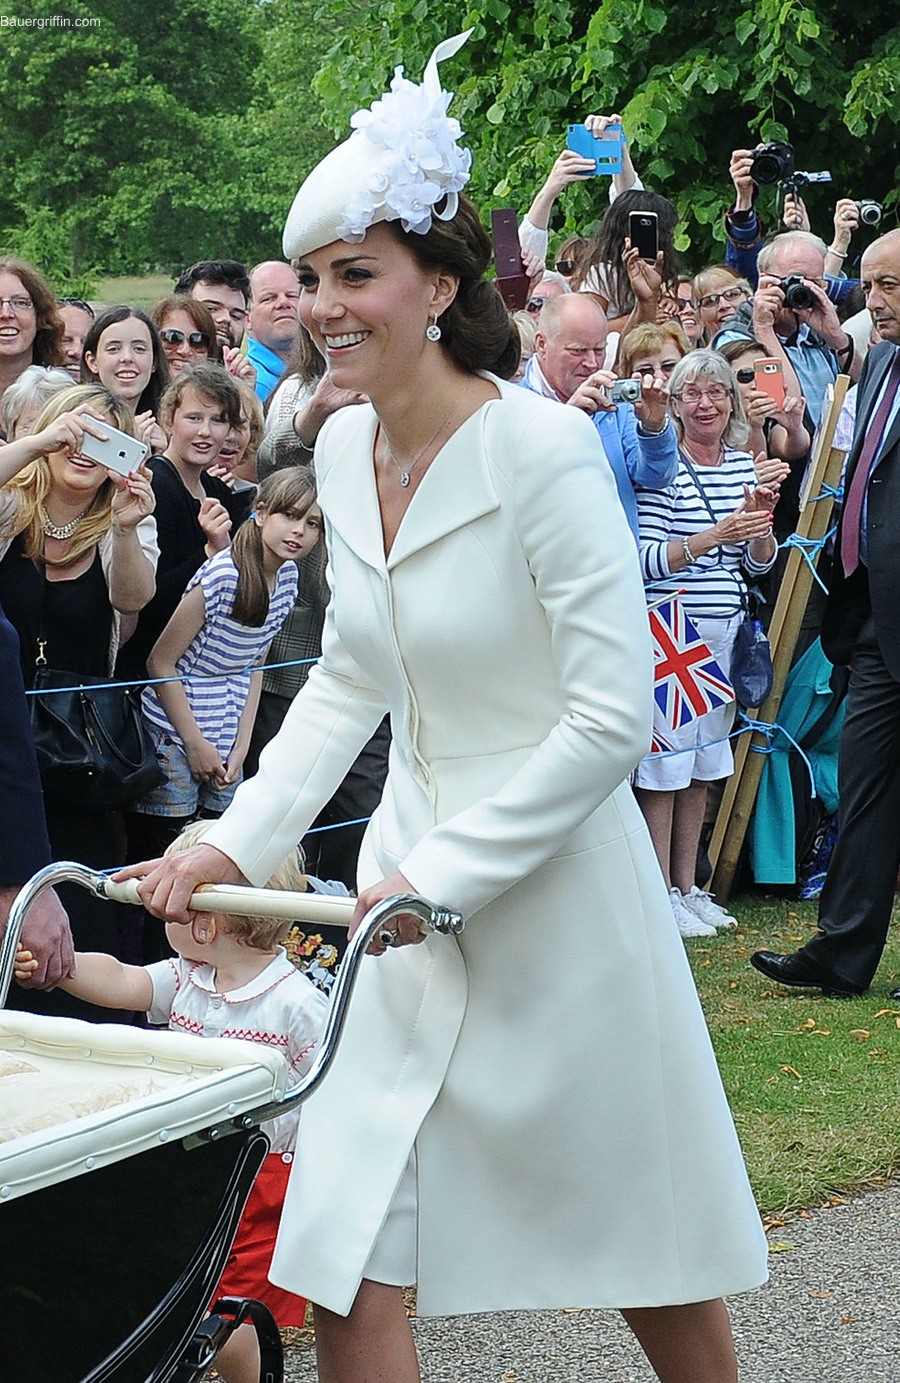 Kate Middleton at Princess Charlotte's christening wearing a cream Alexander McQueen coat